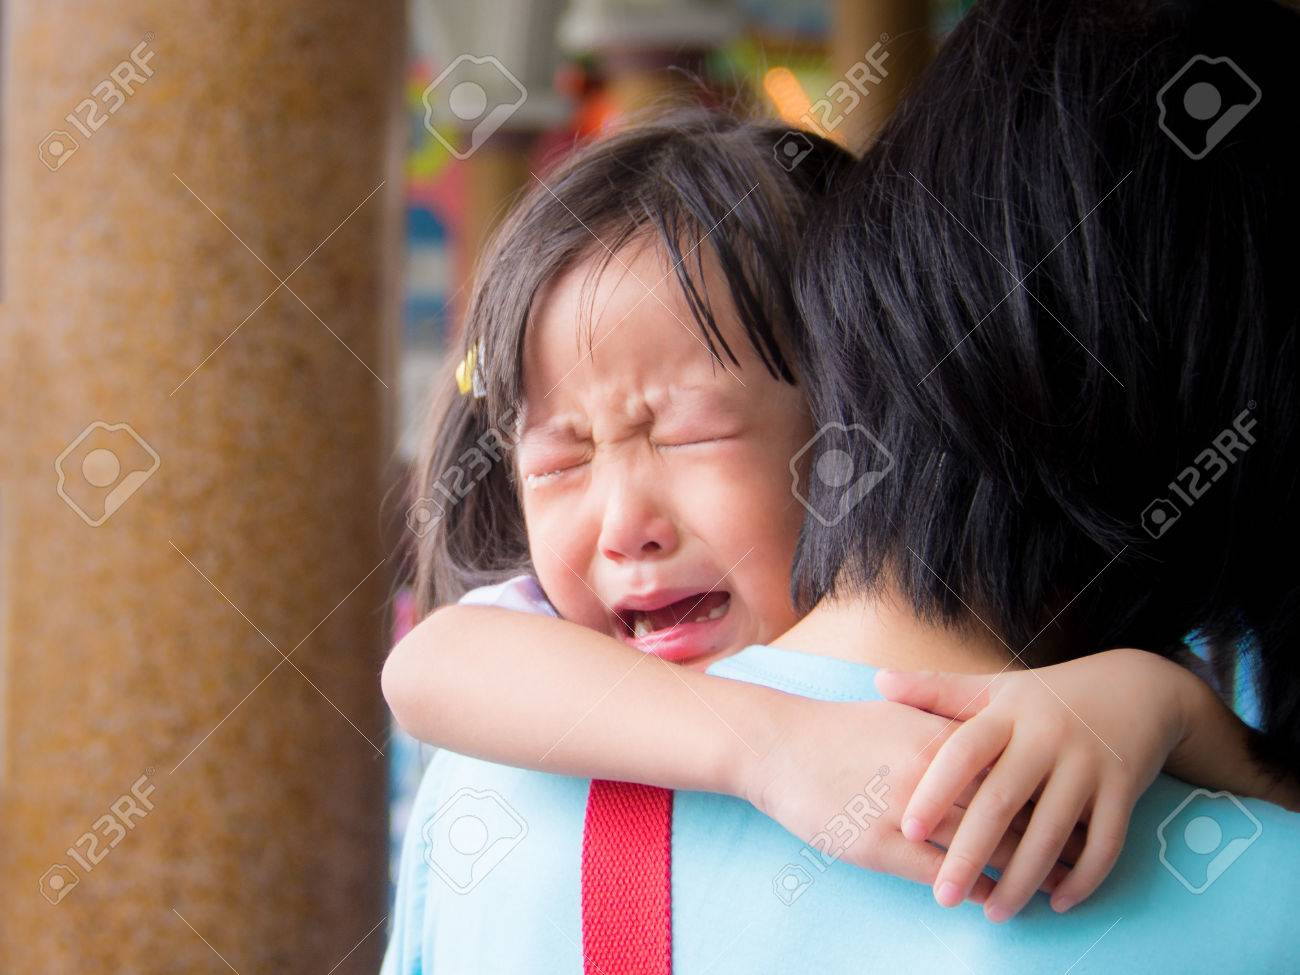 Asian baby girl hugging her mother crying - 58113867